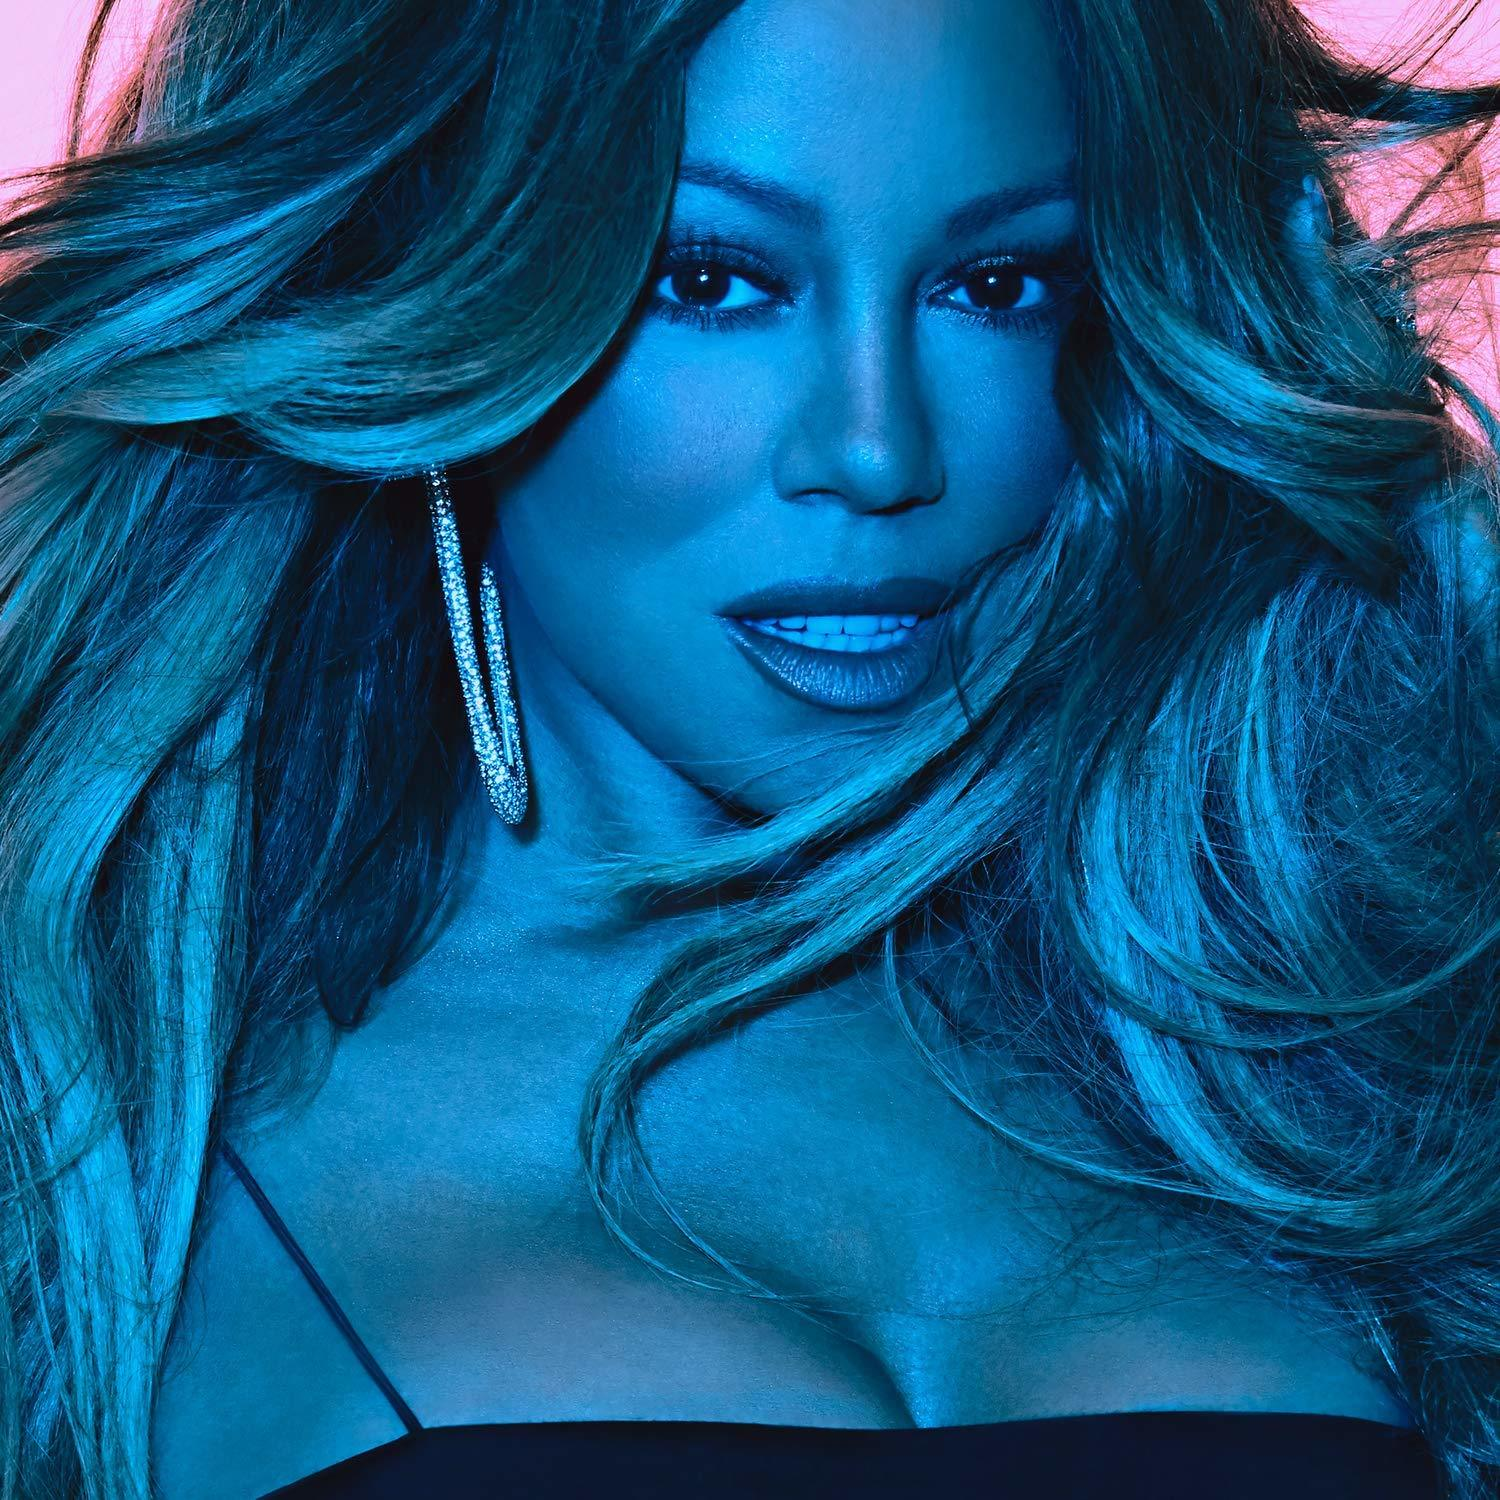 Caution by Mariah Carey image